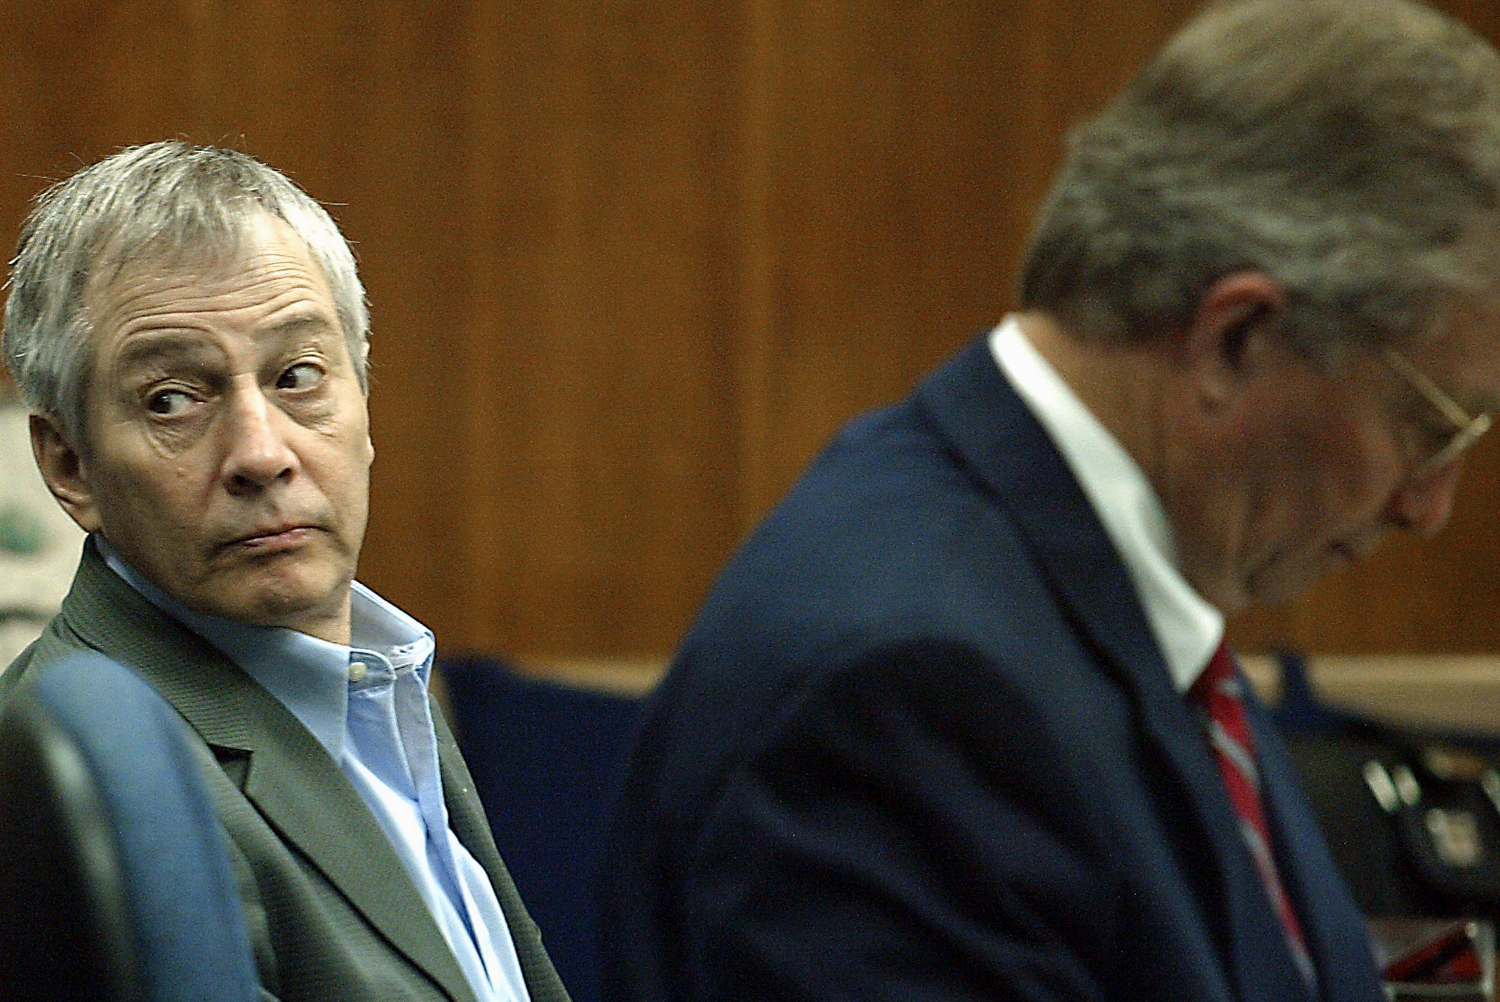 An Affair to Dismember: My Two Decades Covering Robert Durst